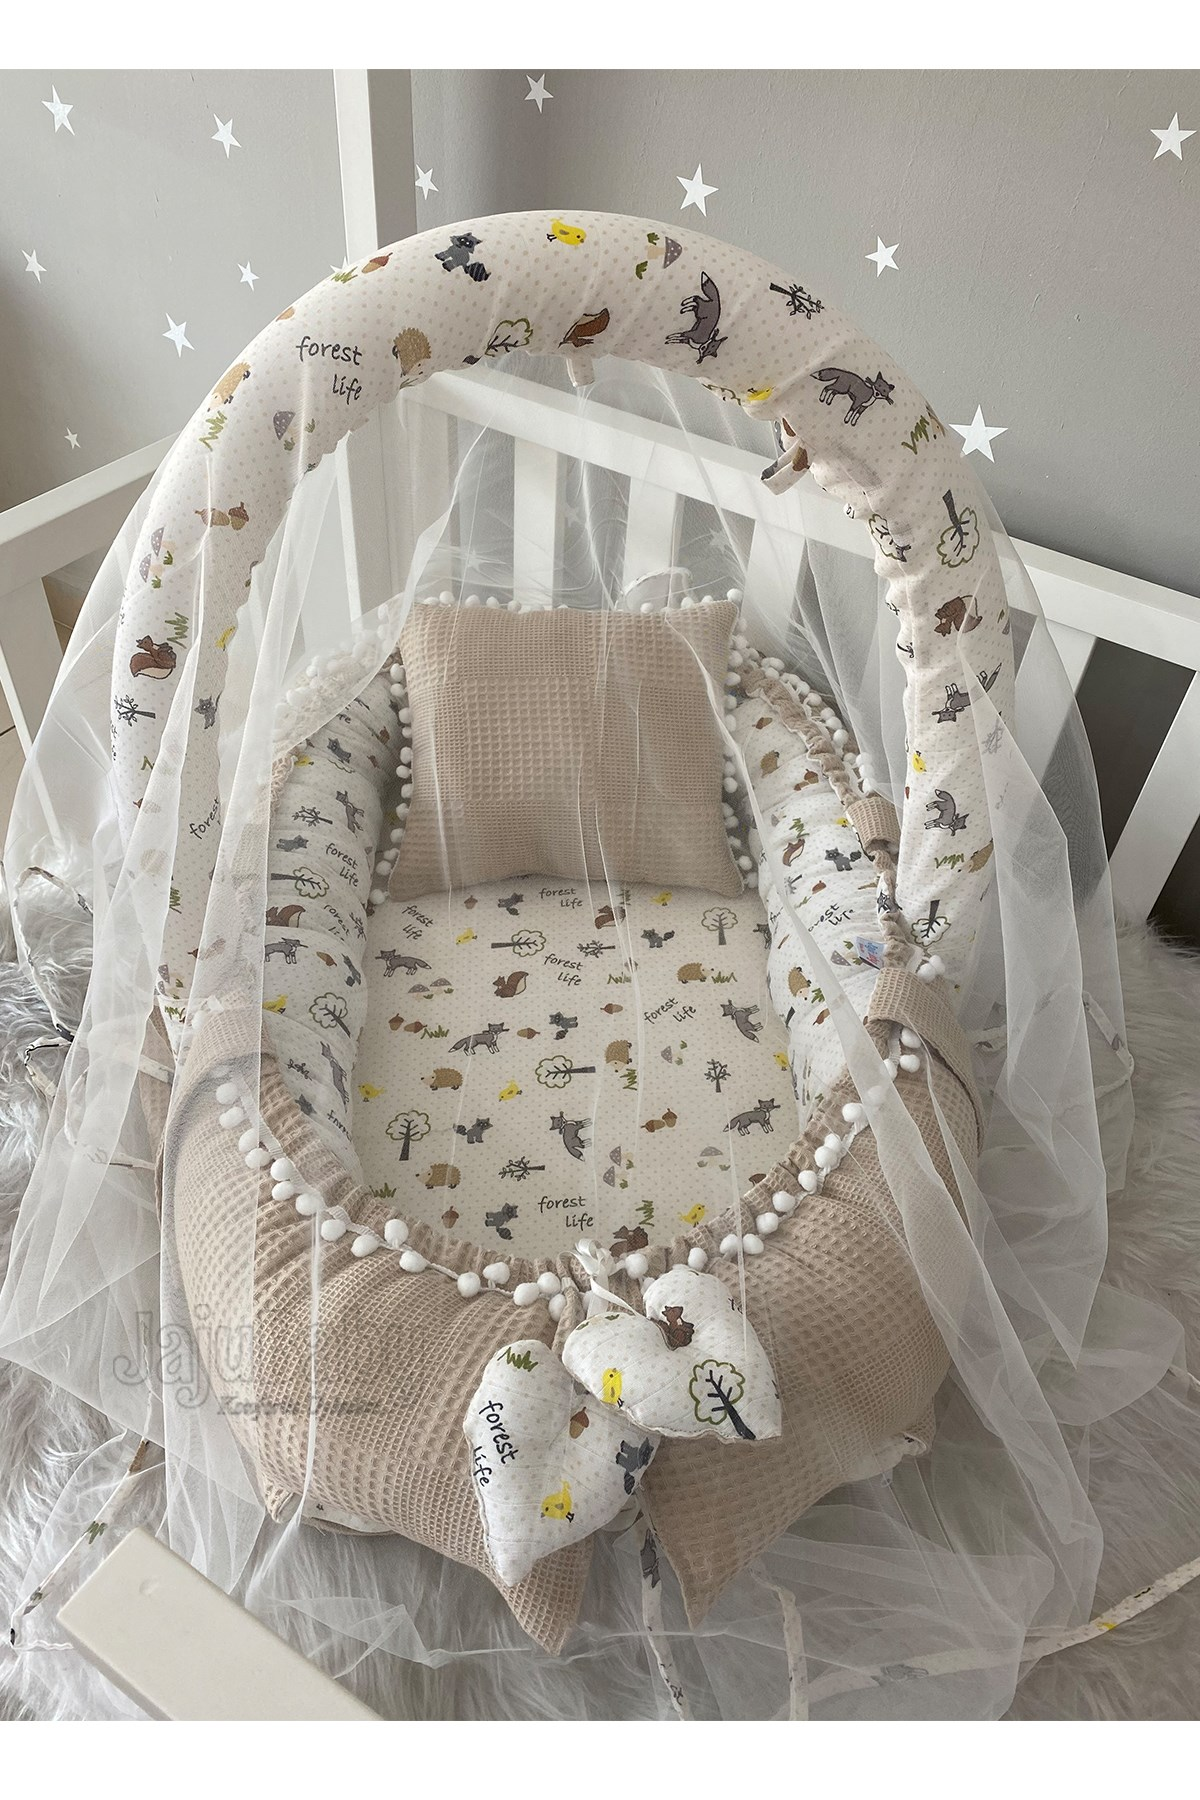 Jaju Baby Special Handmade Waffle Piqué Fabric Muslin Fabric Pompon Babynest Toy Apparatus and Tulle Set